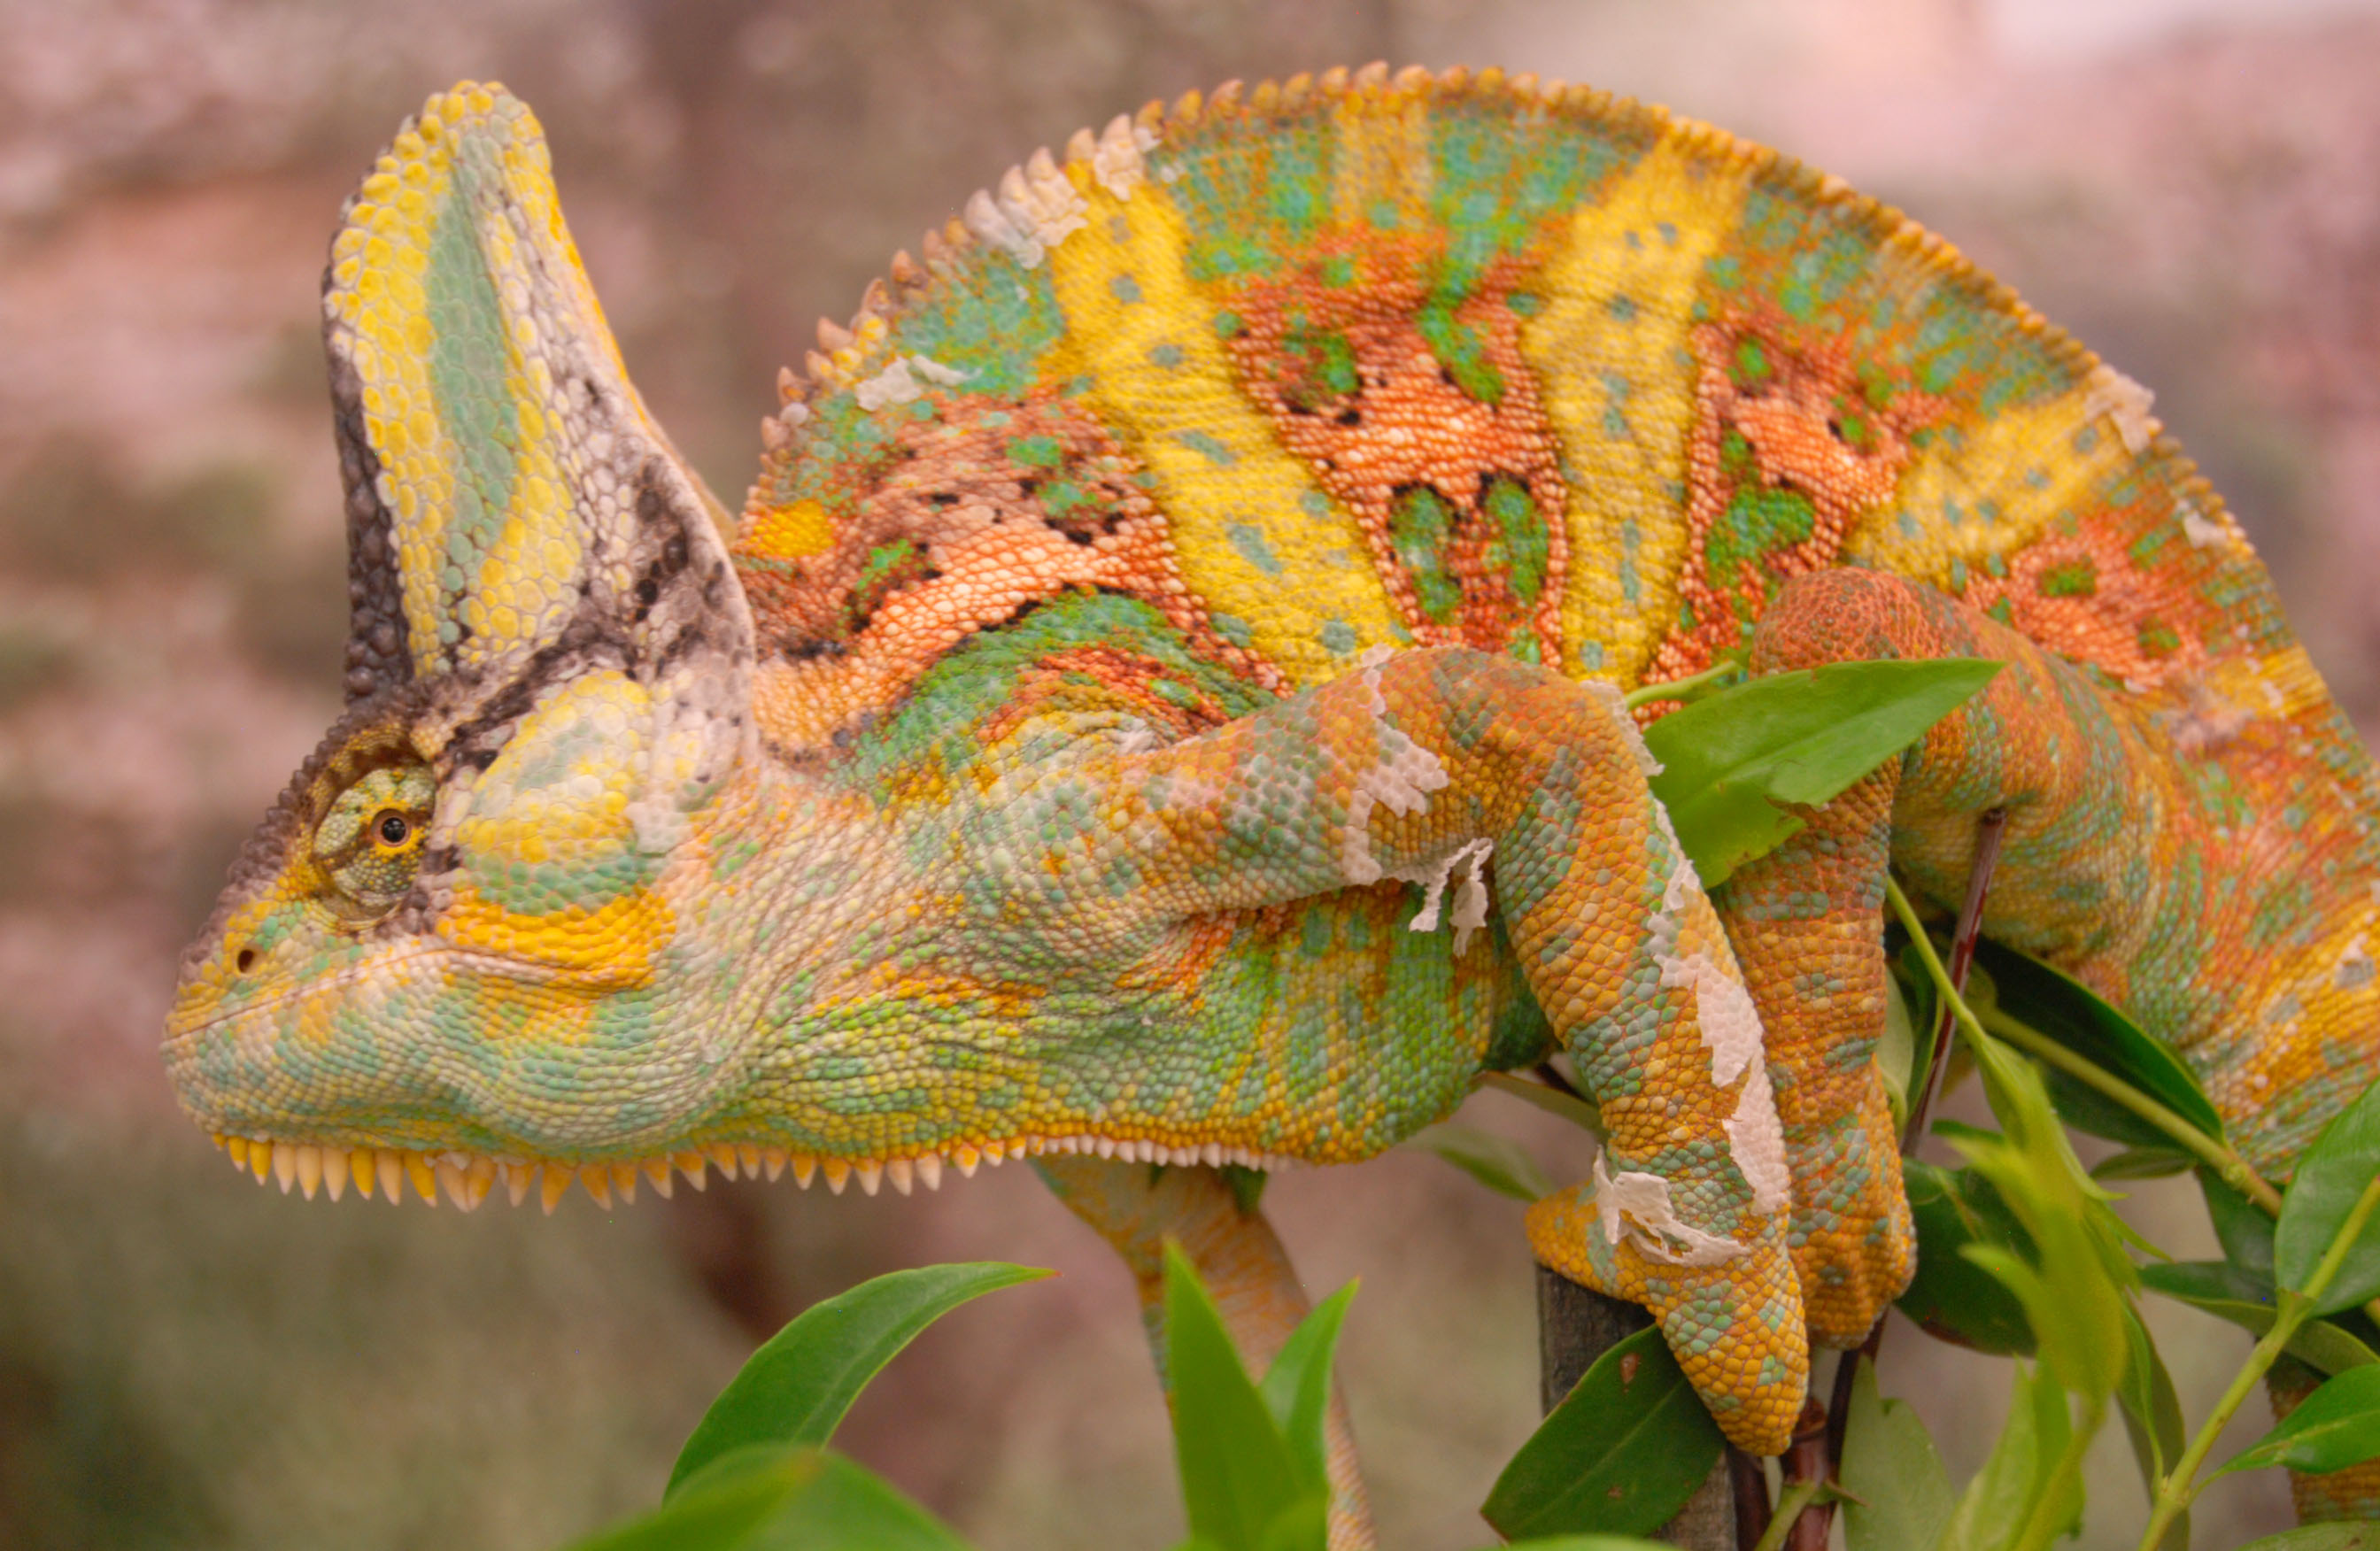 chameleons research paper Chameleon essays: over 180,000 chameleon essays, chameleon term papers, chameleon research paper, book reports 184 990 essays, term and research papers available for.